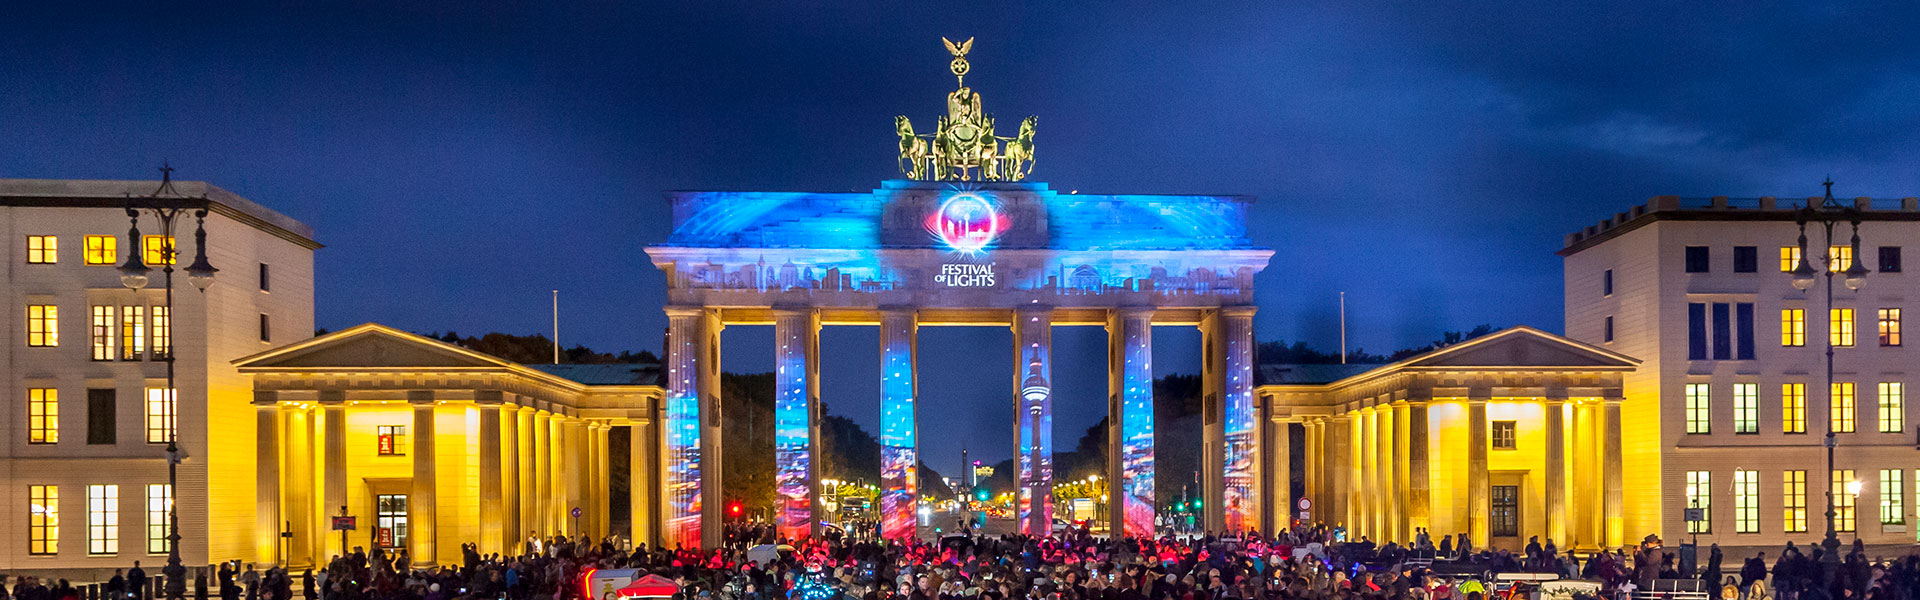 festival-of-lights-berlin-brandenburger-tor